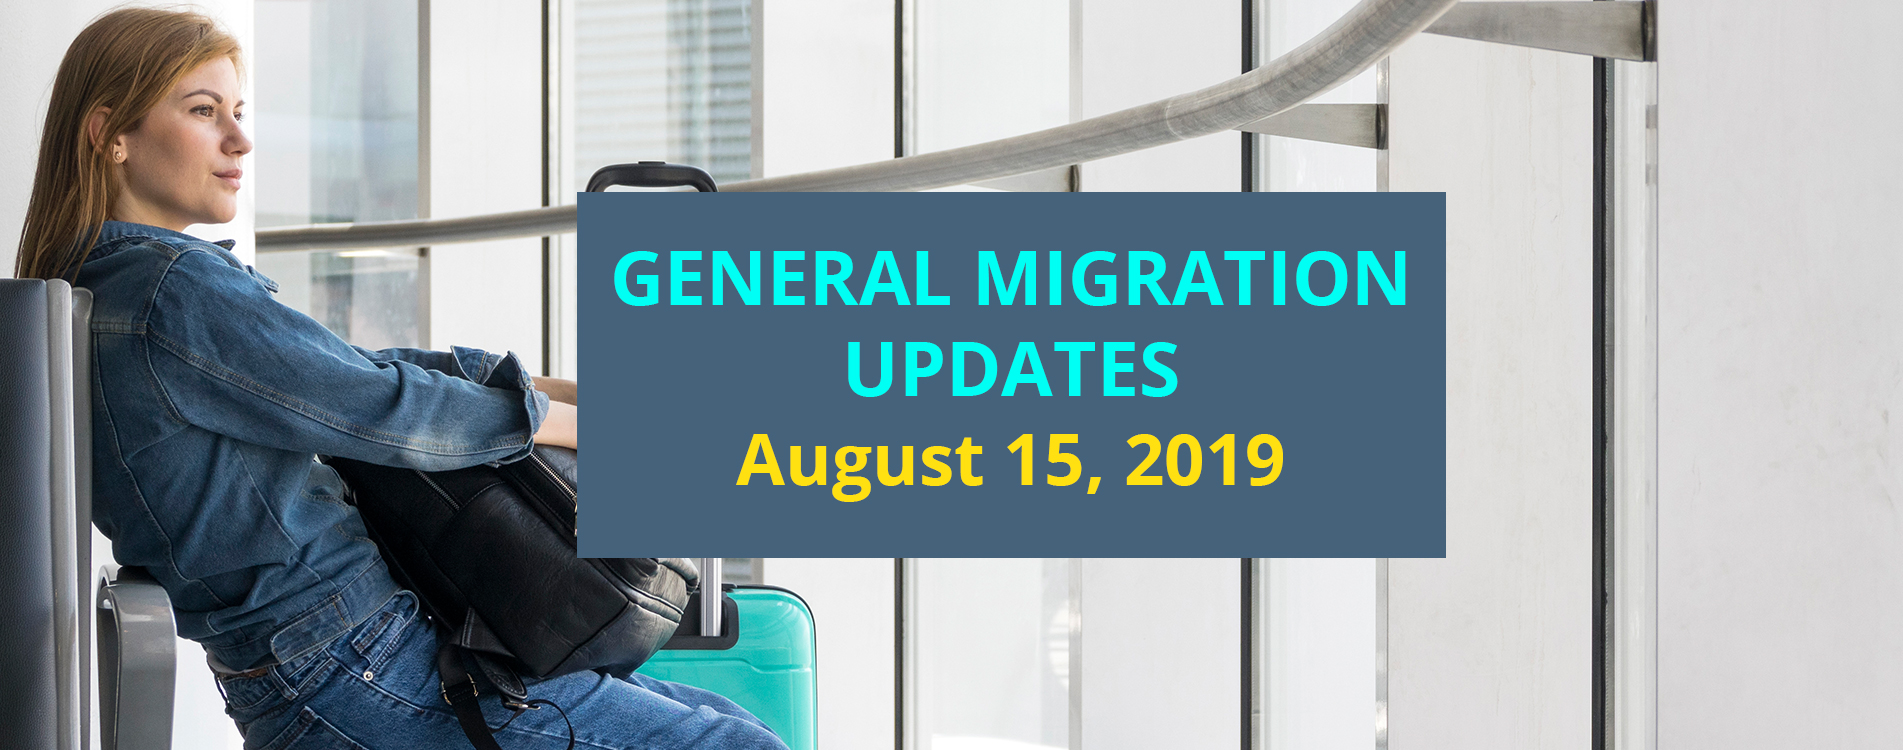 General Migration Updates Dated August 15, 2019